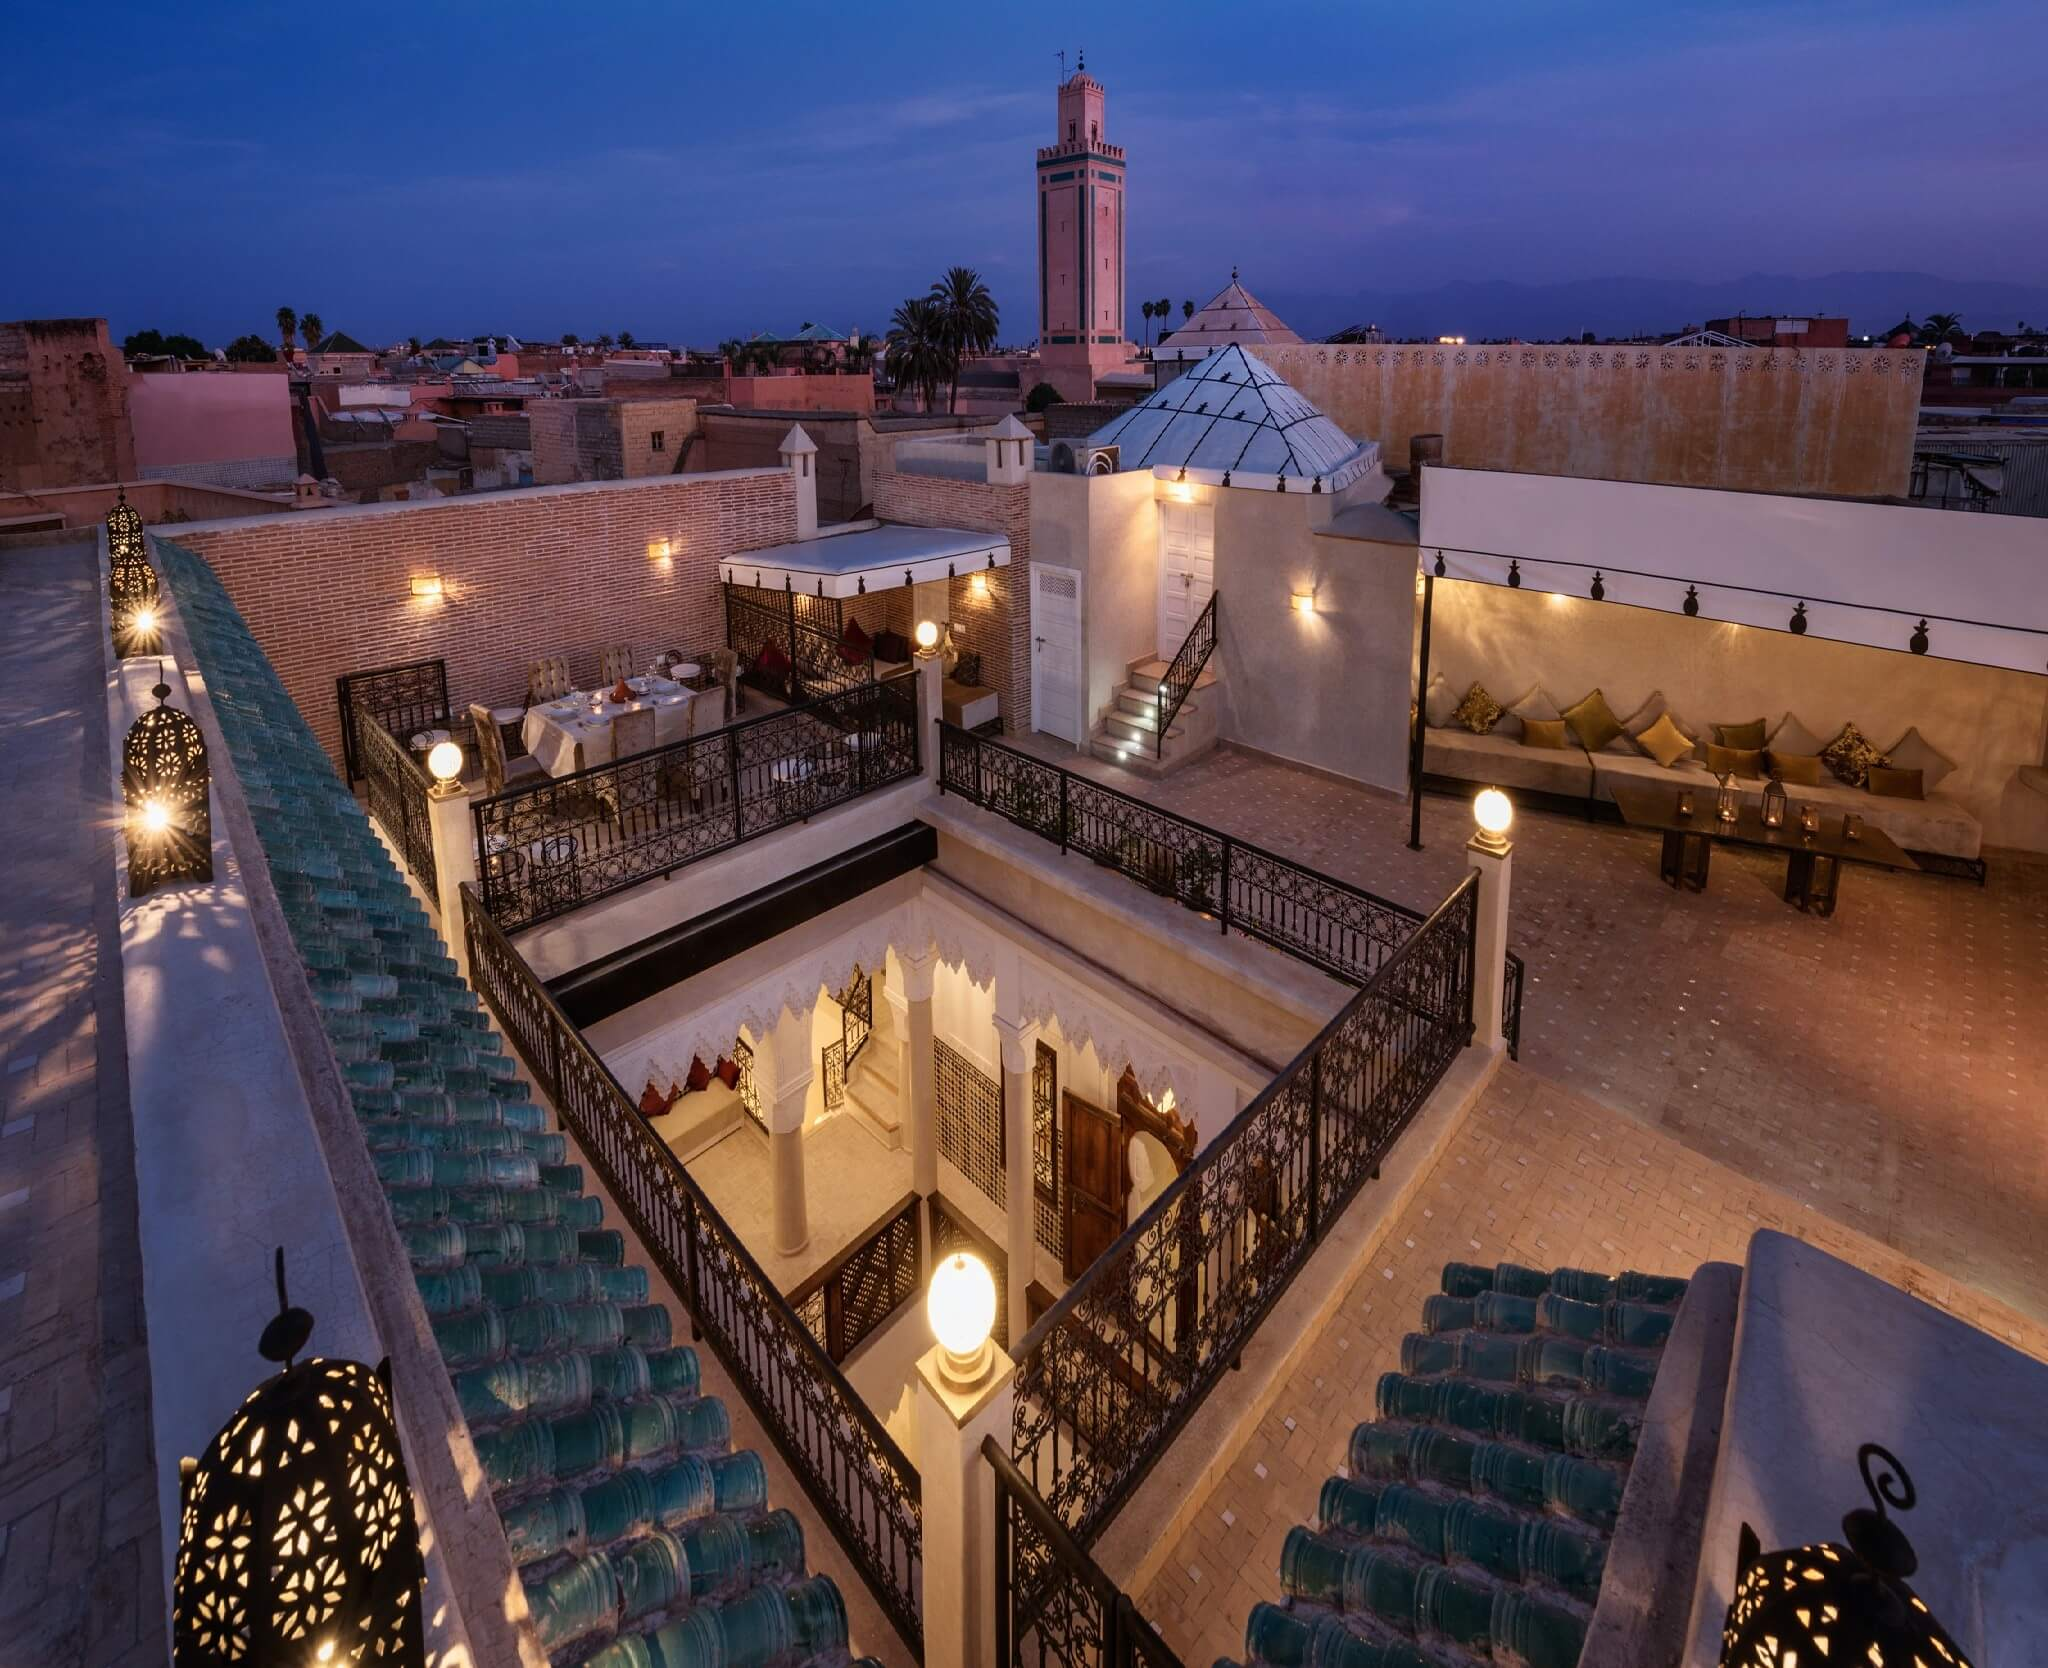 Riad Spice roof terrace at night